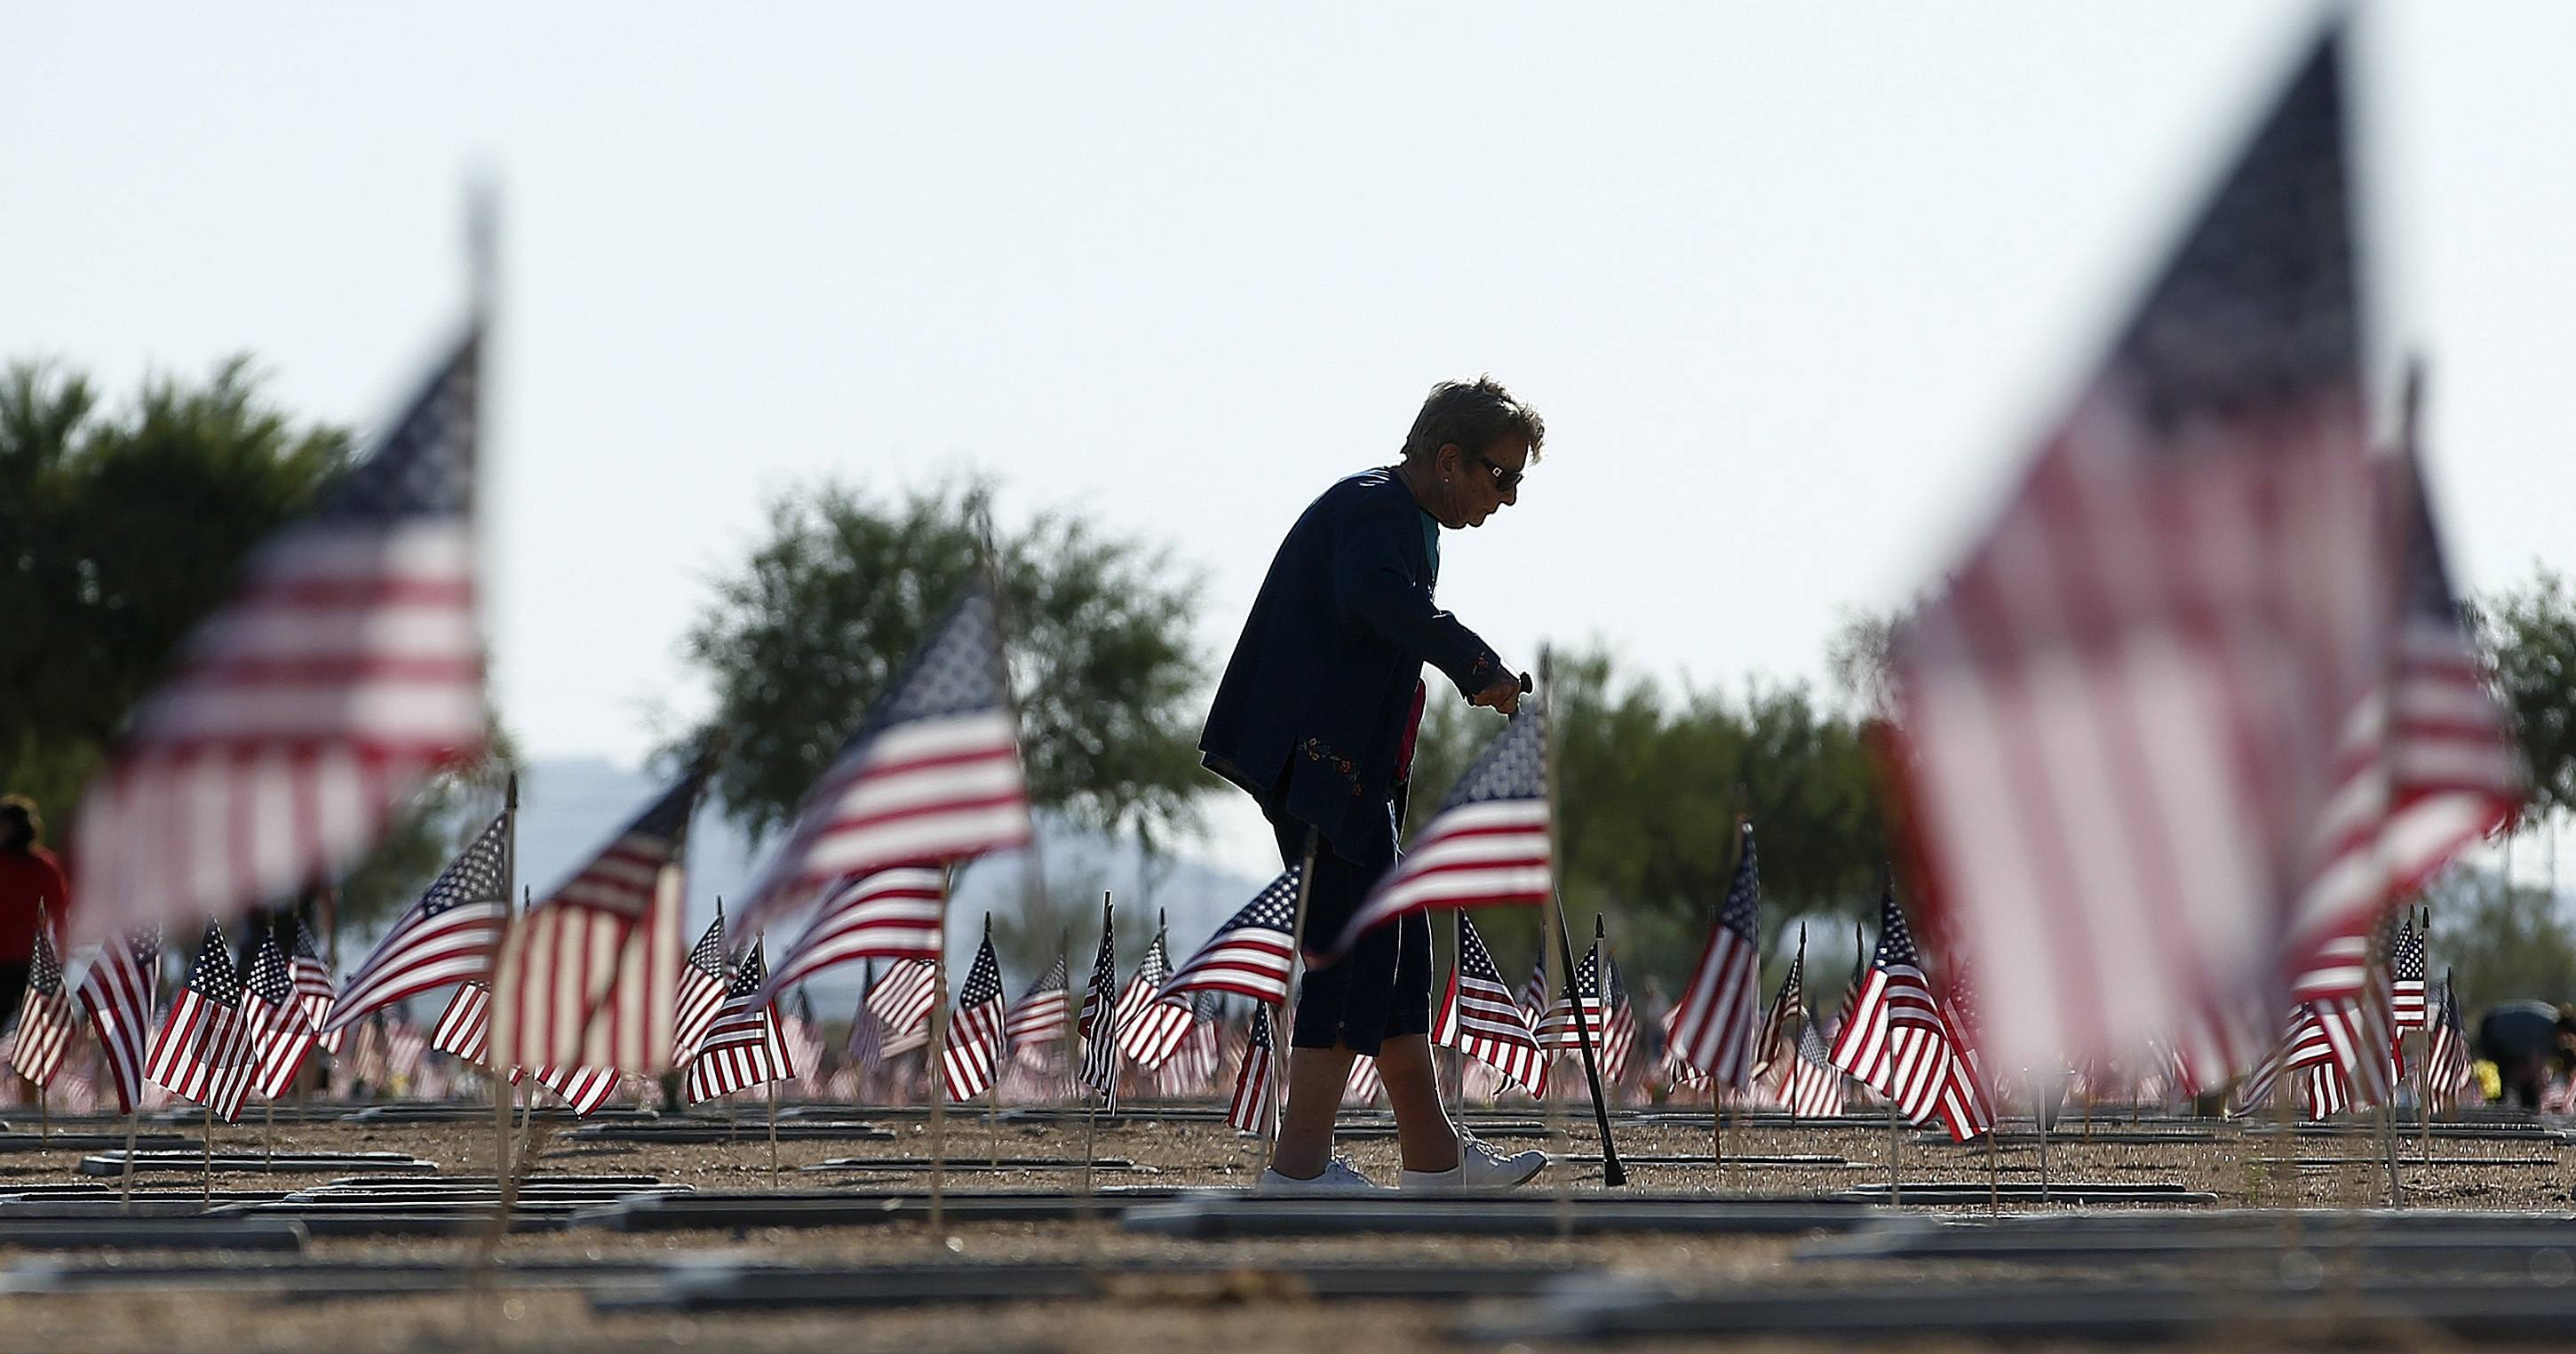 Raymonde Murphy walks past the flag-adorned graves after visiting the grave of her husband, William Murphy, a World War II veteran, at the National Memorial Cemetery of Arizona on Memorial Day, Monday, May 26, 2014, in Phoenix.